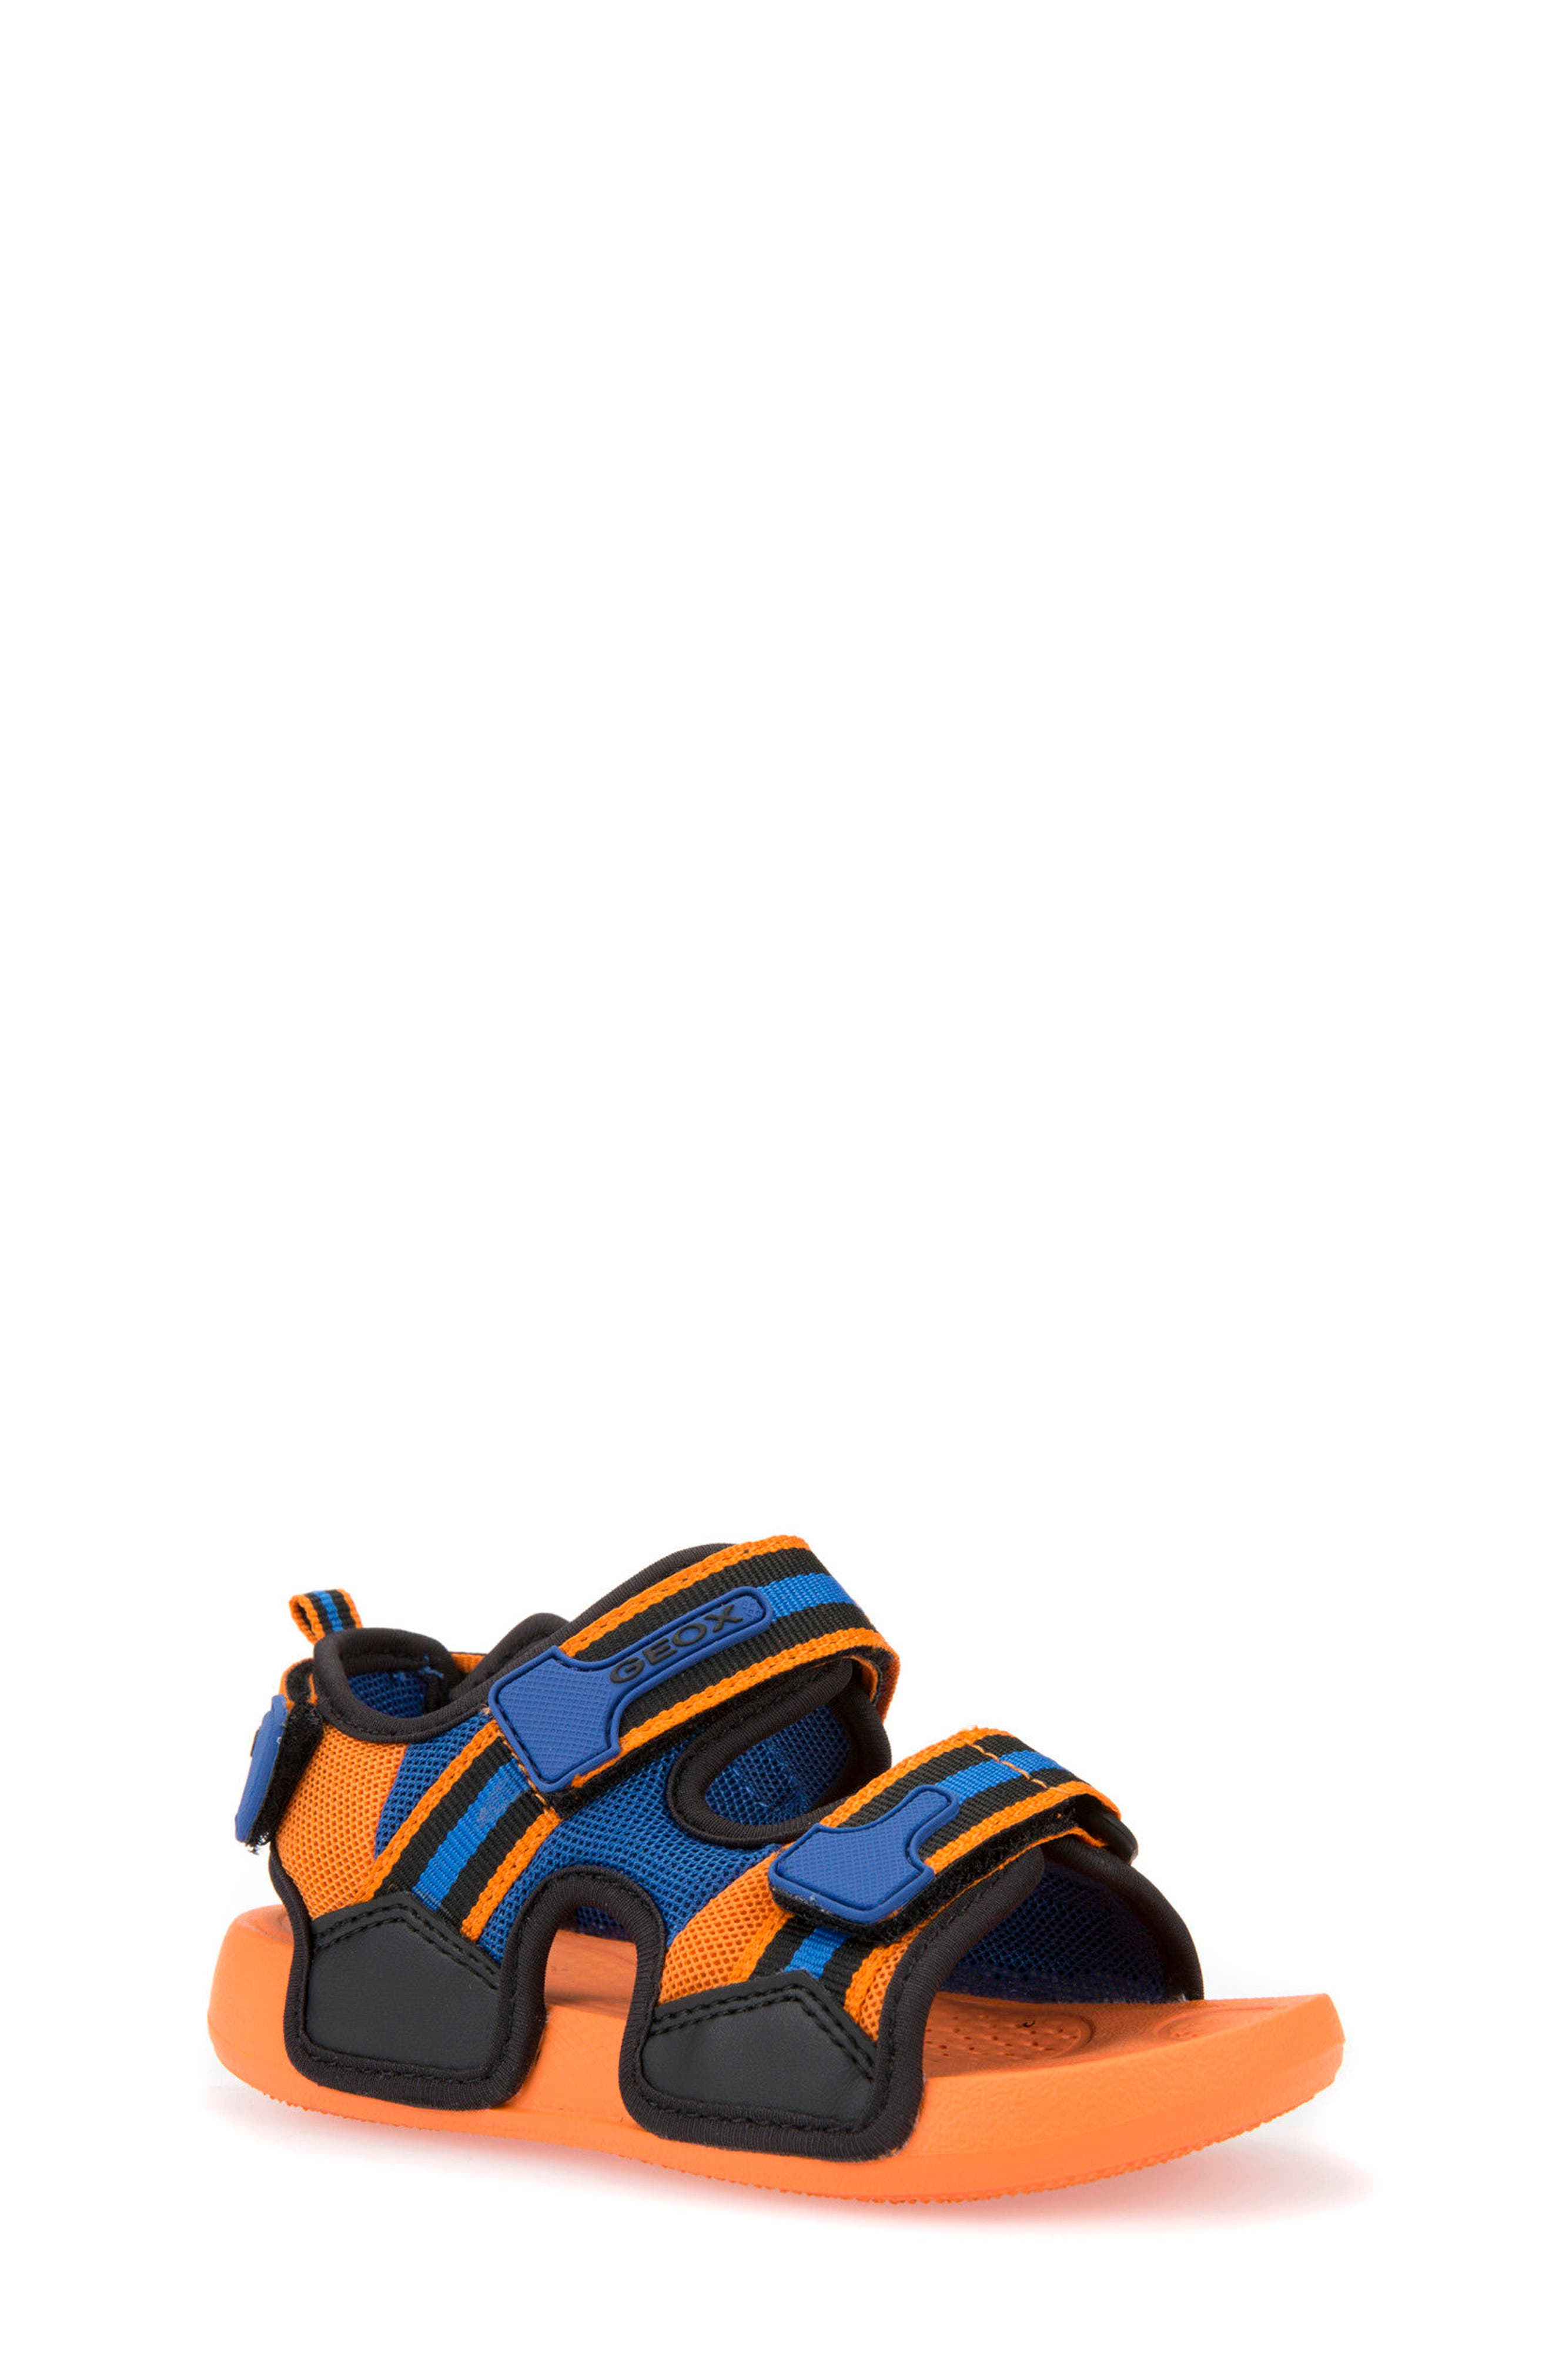 Geox Ultrak Sandal (Toddler, Little Kid & Big Kid)